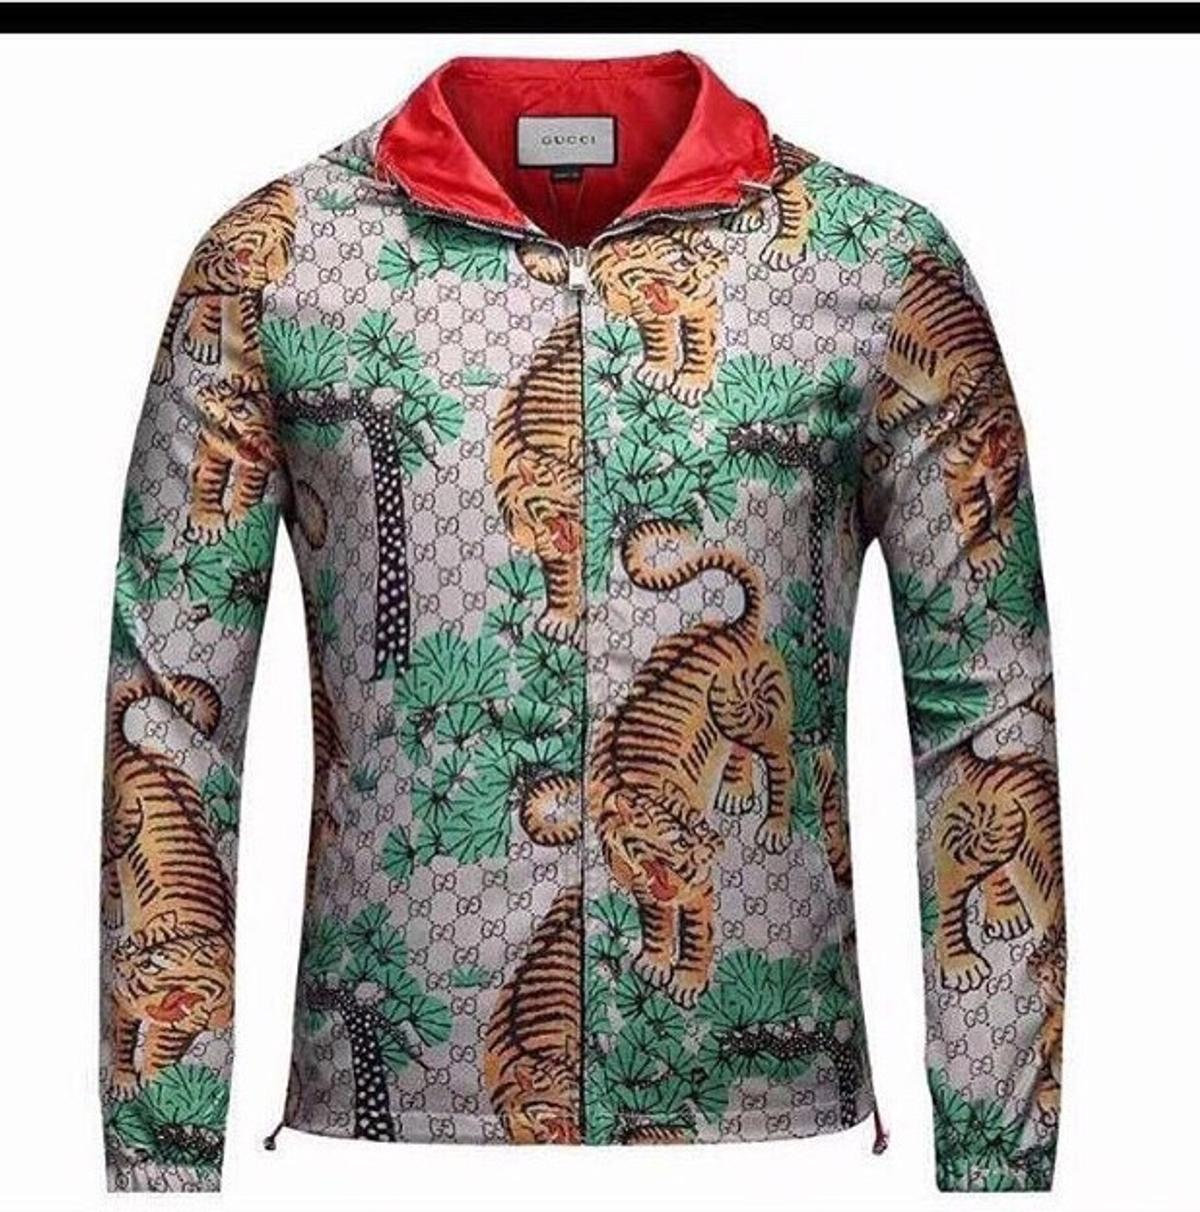 132f8bb53 Men's Bengal Tiger Gucci jacket in B30 Birmingham for £100.00 for ...